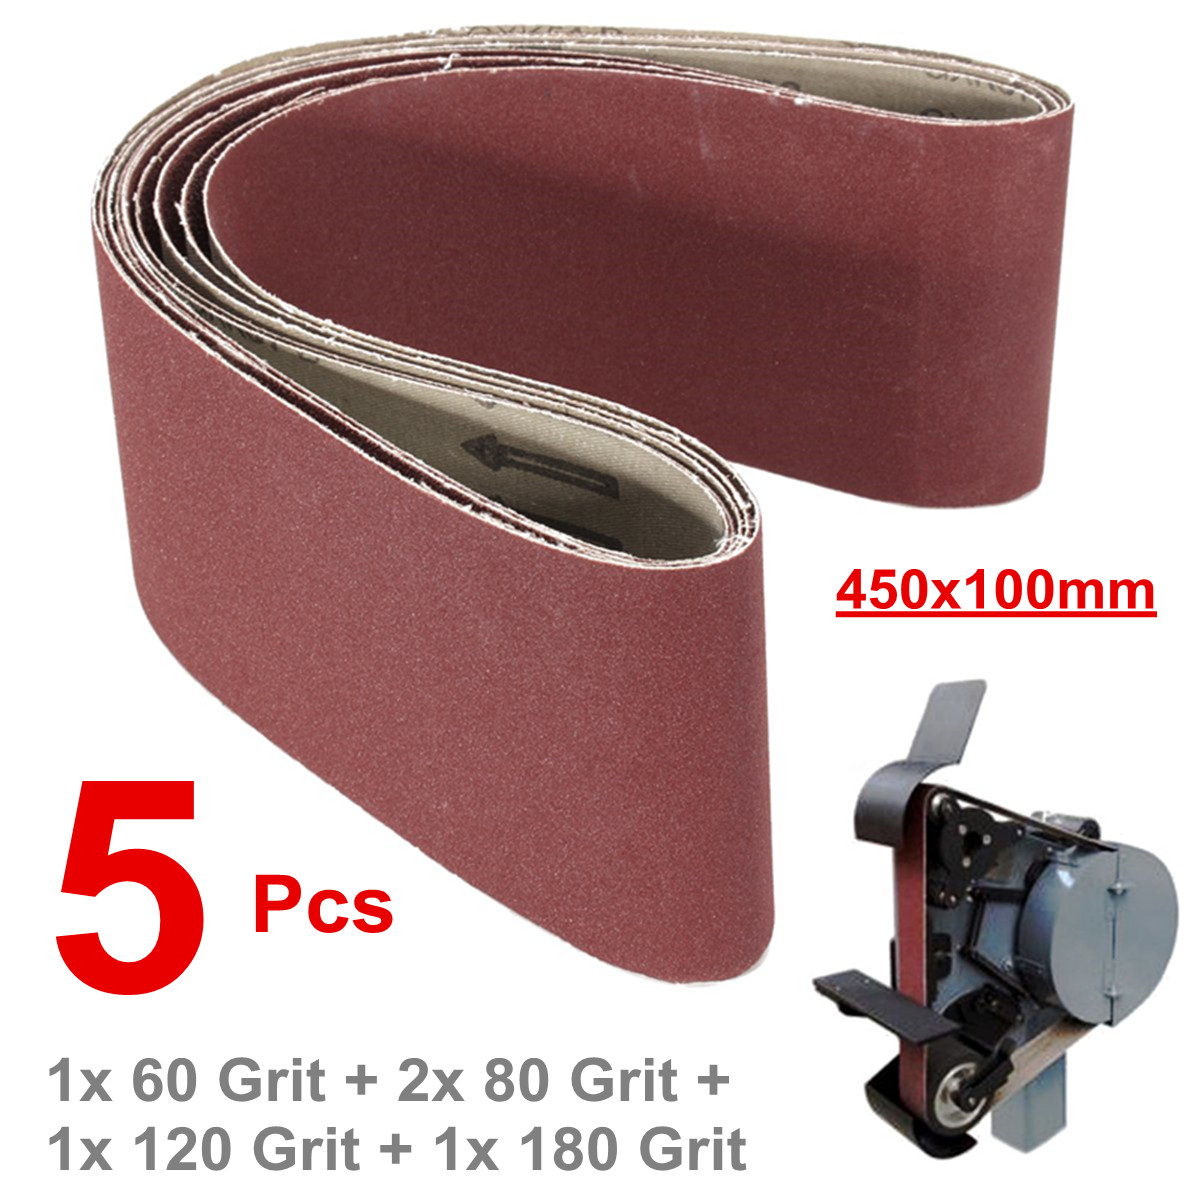 5pcs Sanding Belts 450x100mm Mixed Grade 60 80 120 180 Grit Full Set Abrasive Oxide Polishing Power Tool Sander Grinding Machine